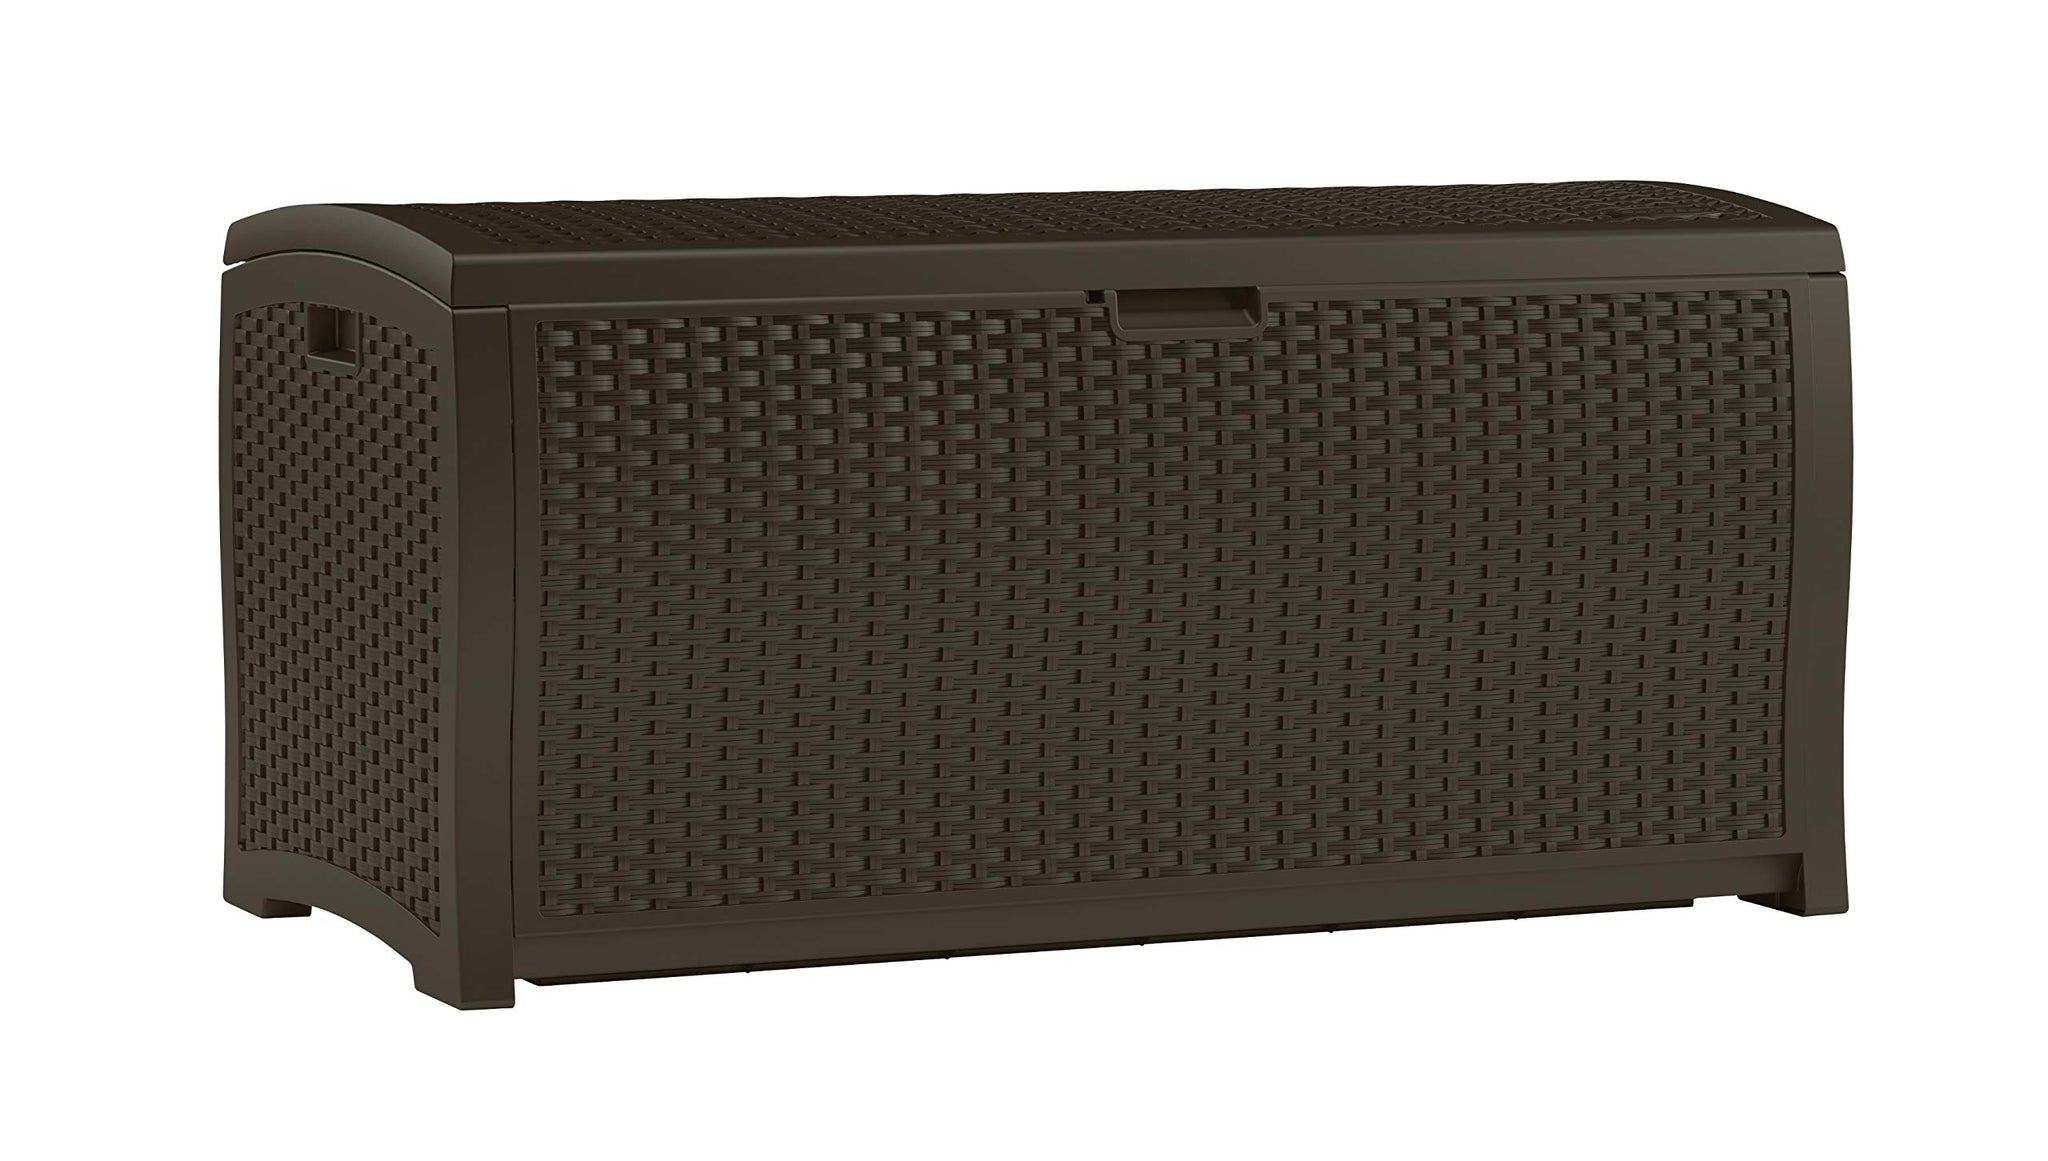 Suncast 99-Gallon Large Deck Box - Lightweight Resin Indoor/Outdoor Storage Container and Seat for Patio Cushions and Gardening Tools - Store Items on Patio, Garage, Yard - Mocha